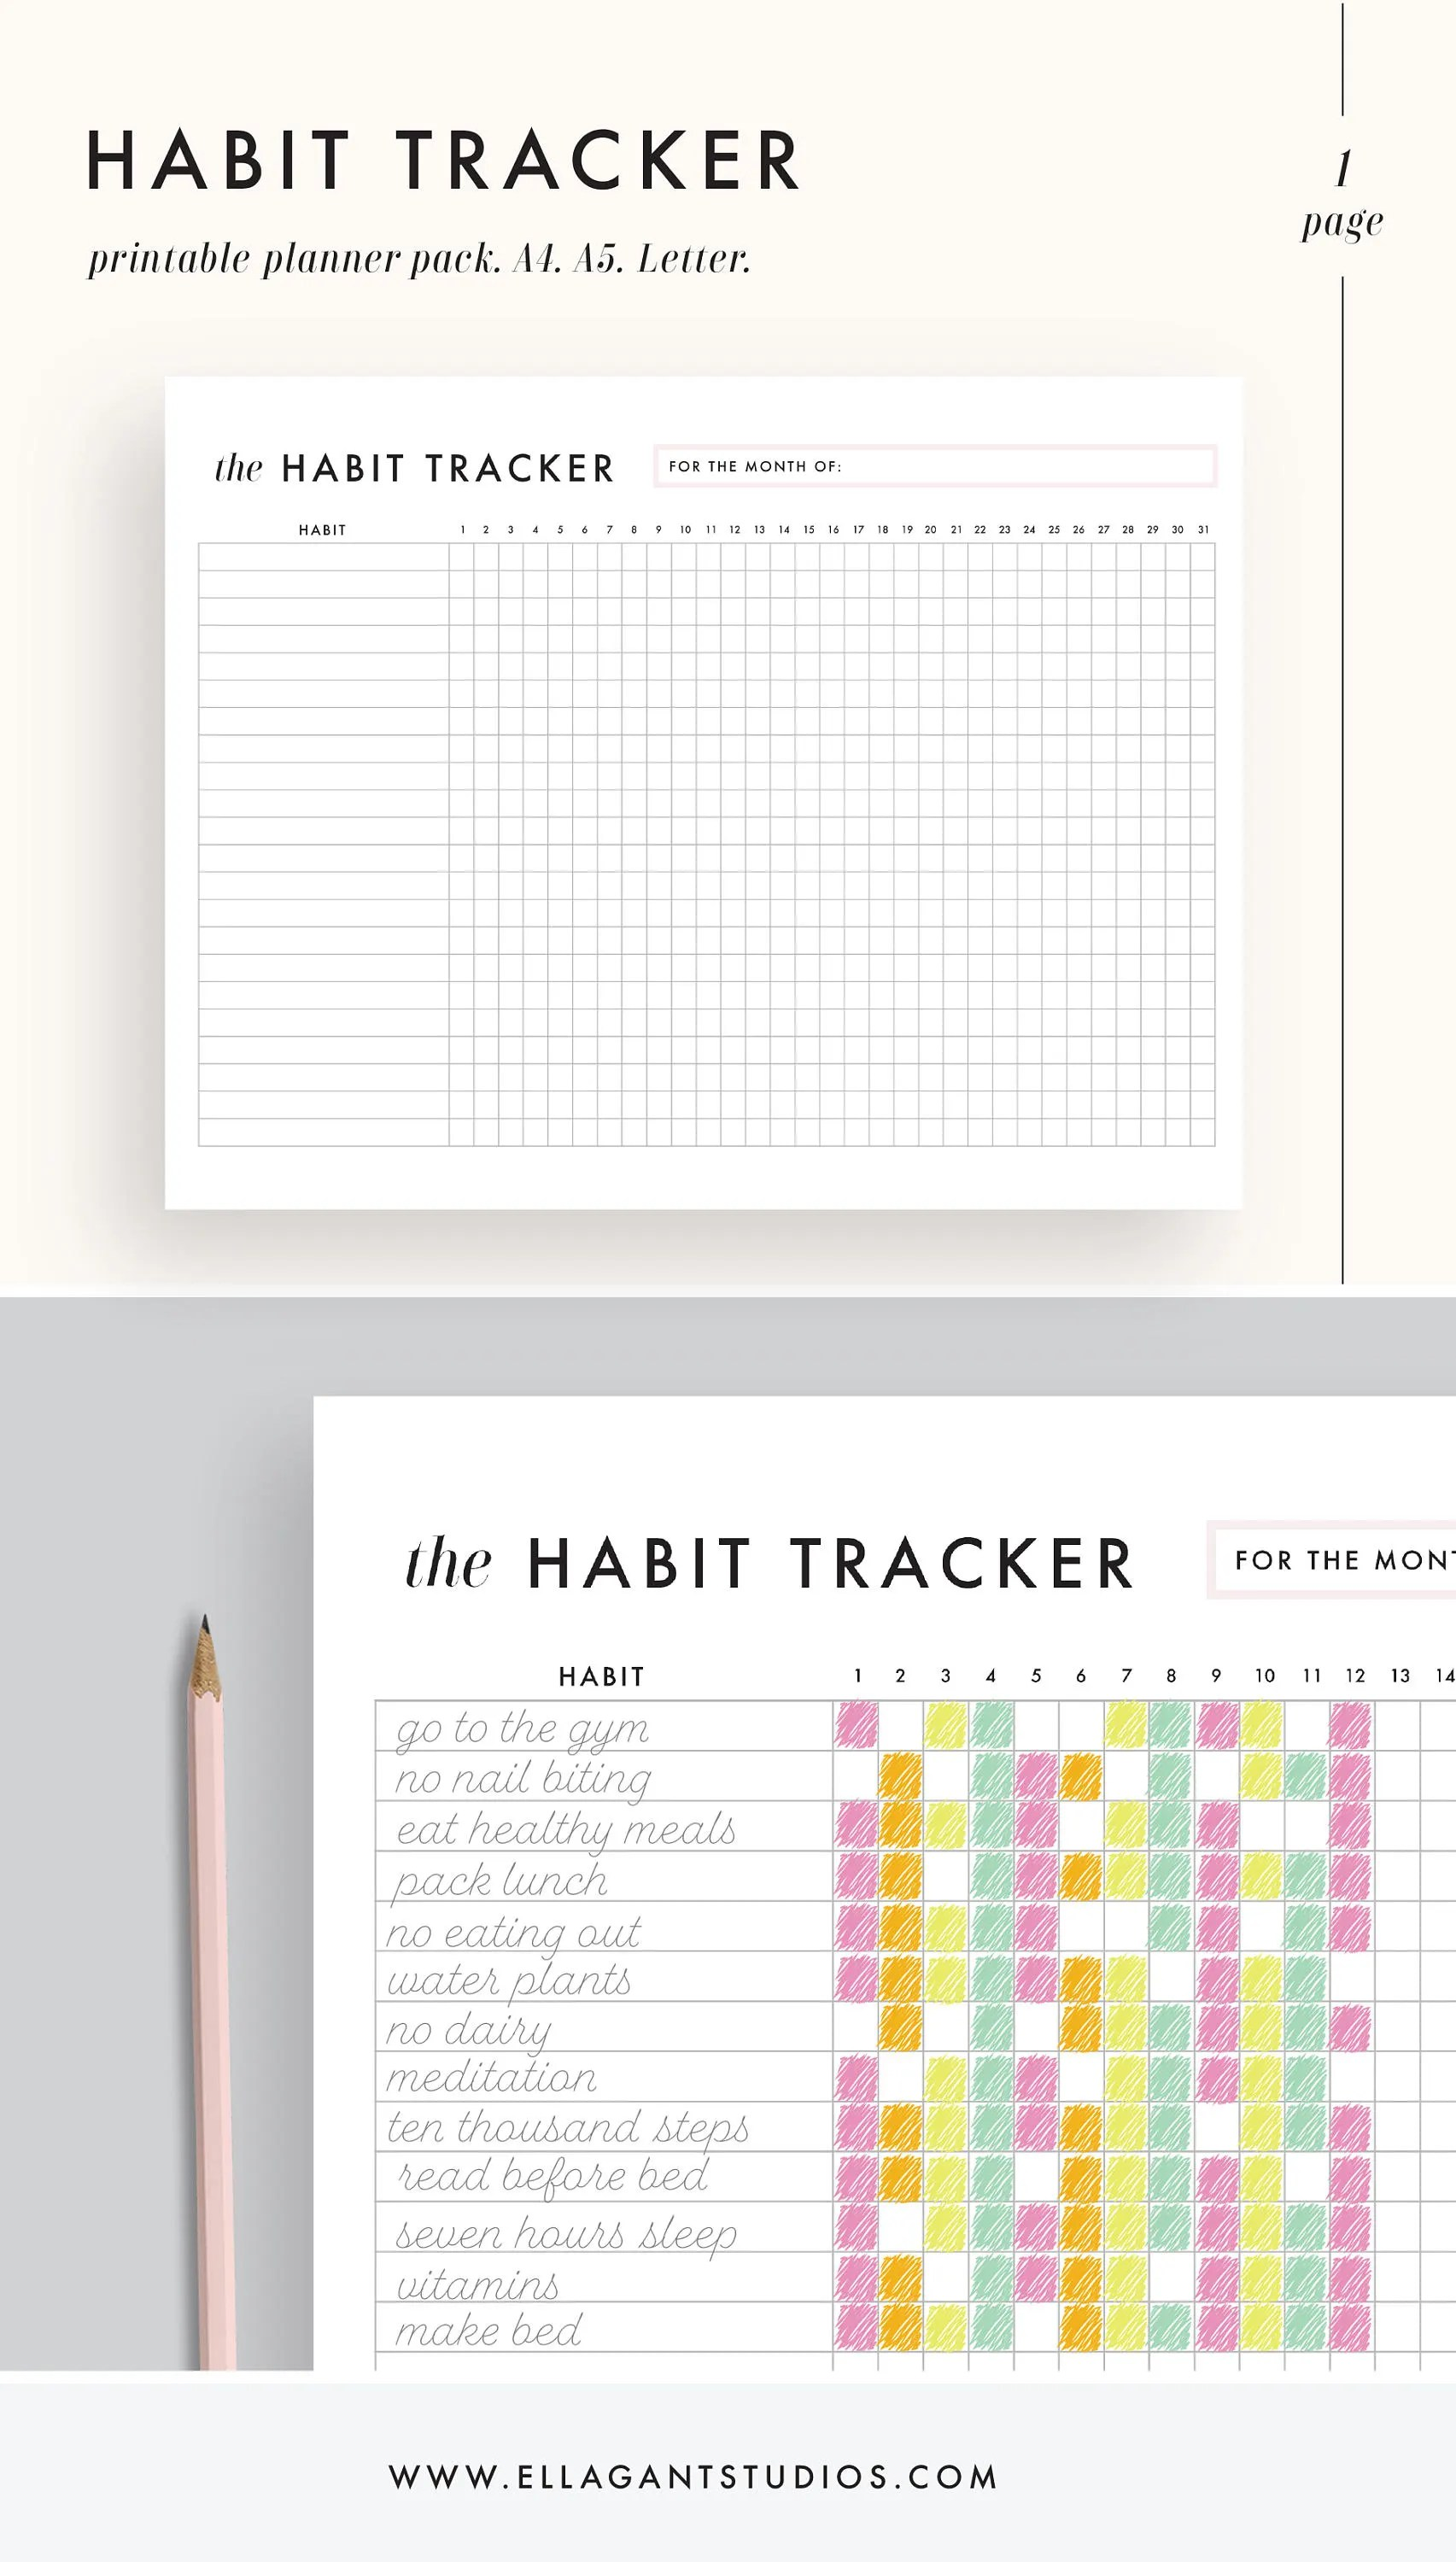 Habit Tracker Printable Daily Habits Planner Planner